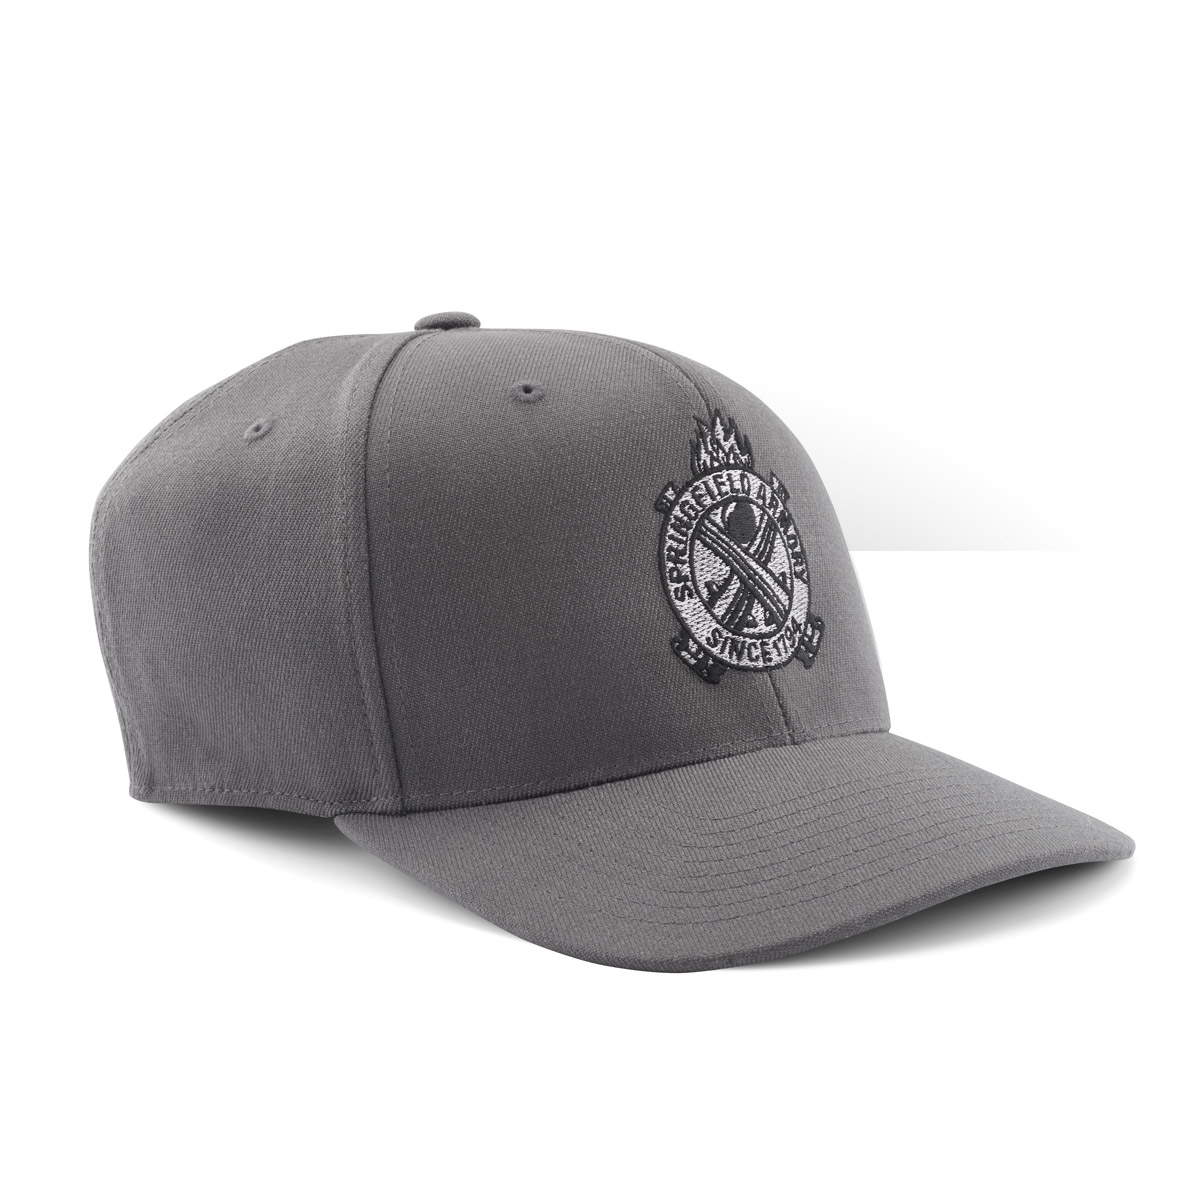 Springfield Crossed Cannon Snap-Back Hat - Gray/Black